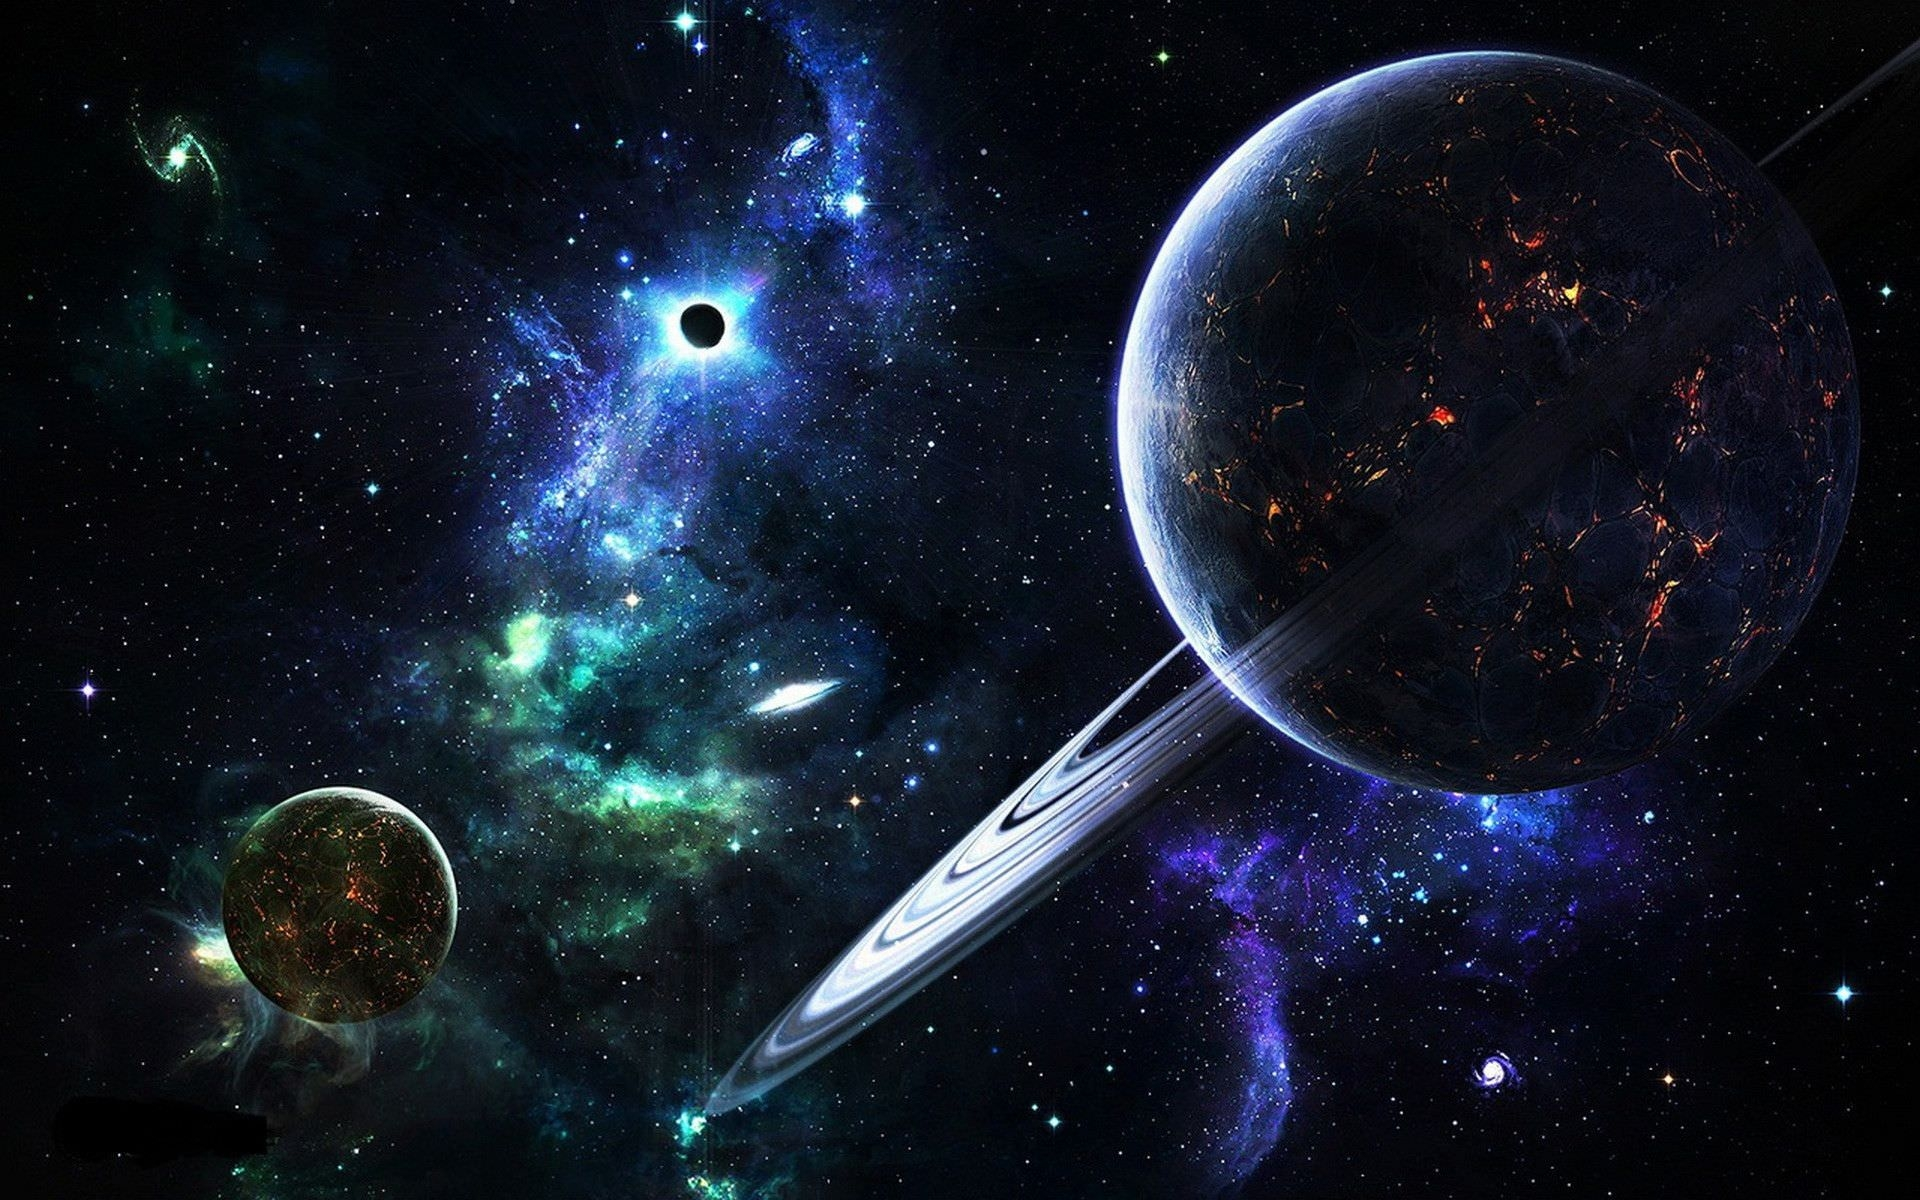 World Wallpaper Sci Fi Wallpaper: 21+ Sci Fi Wallpapers, Fantasy Backgrounds, Images